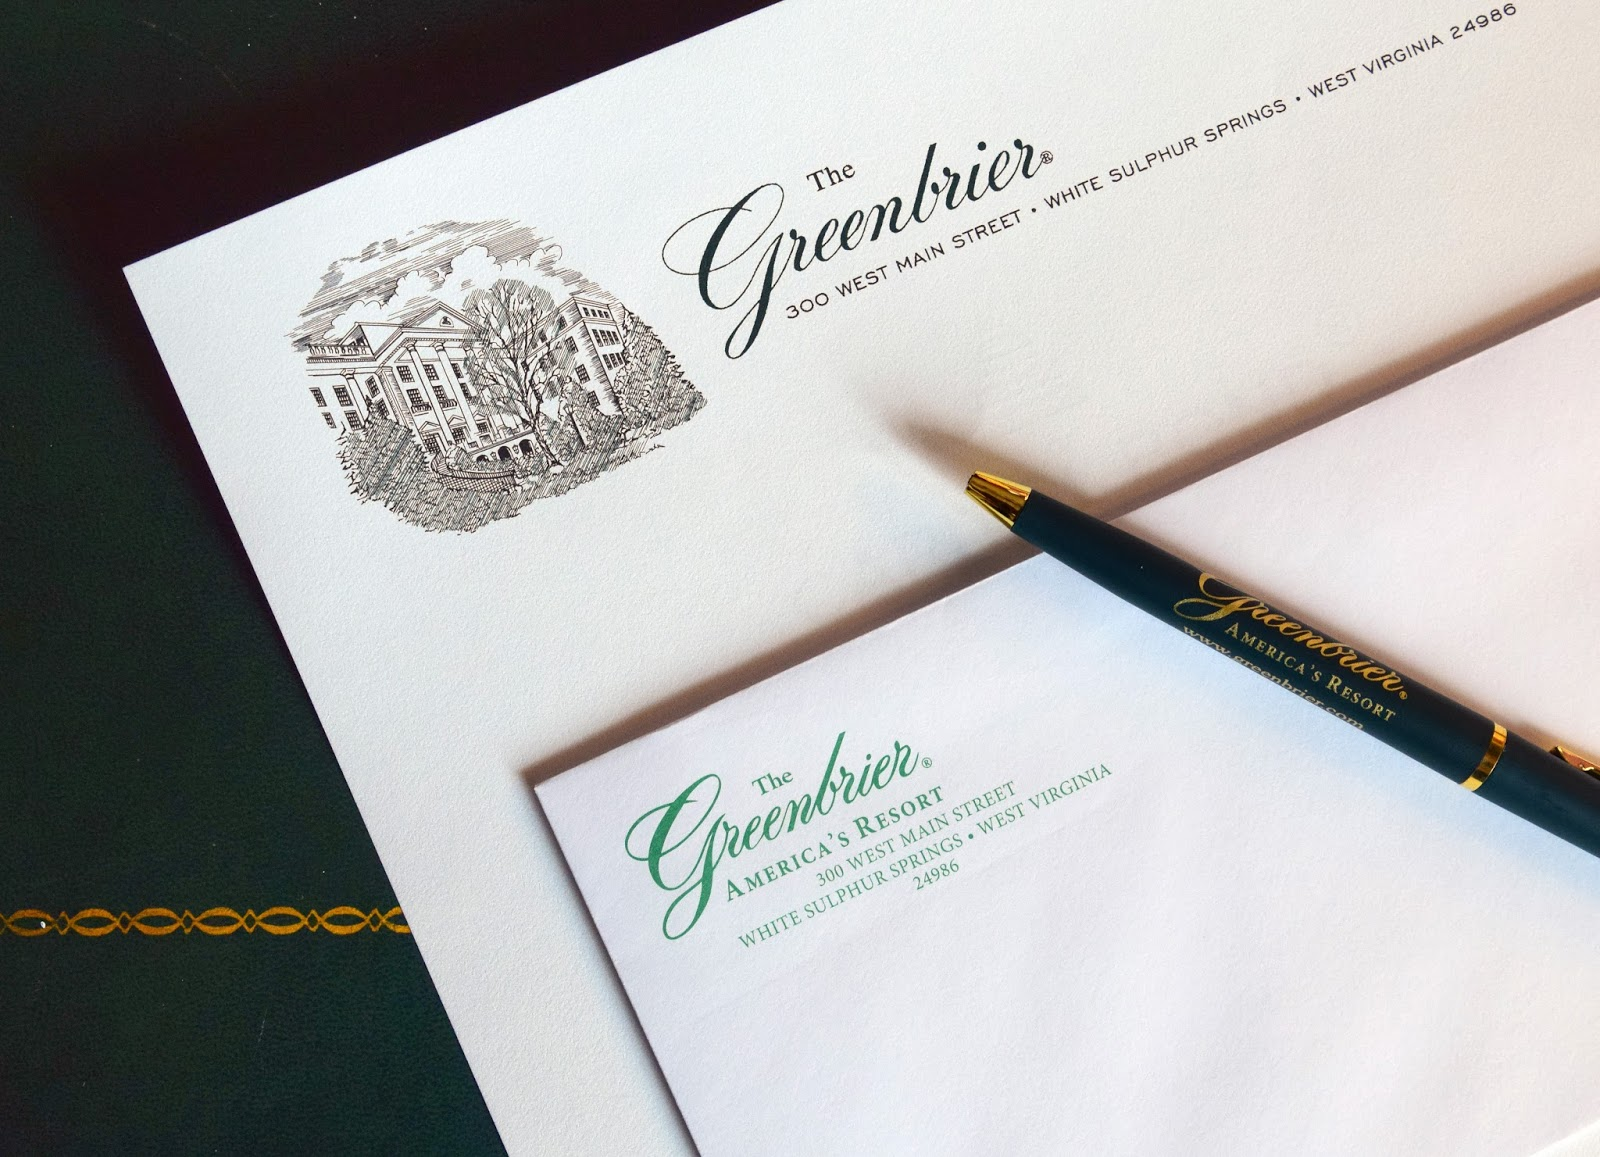 winter weekend at the greenbrier - the greenbrier - the greenbrier decor